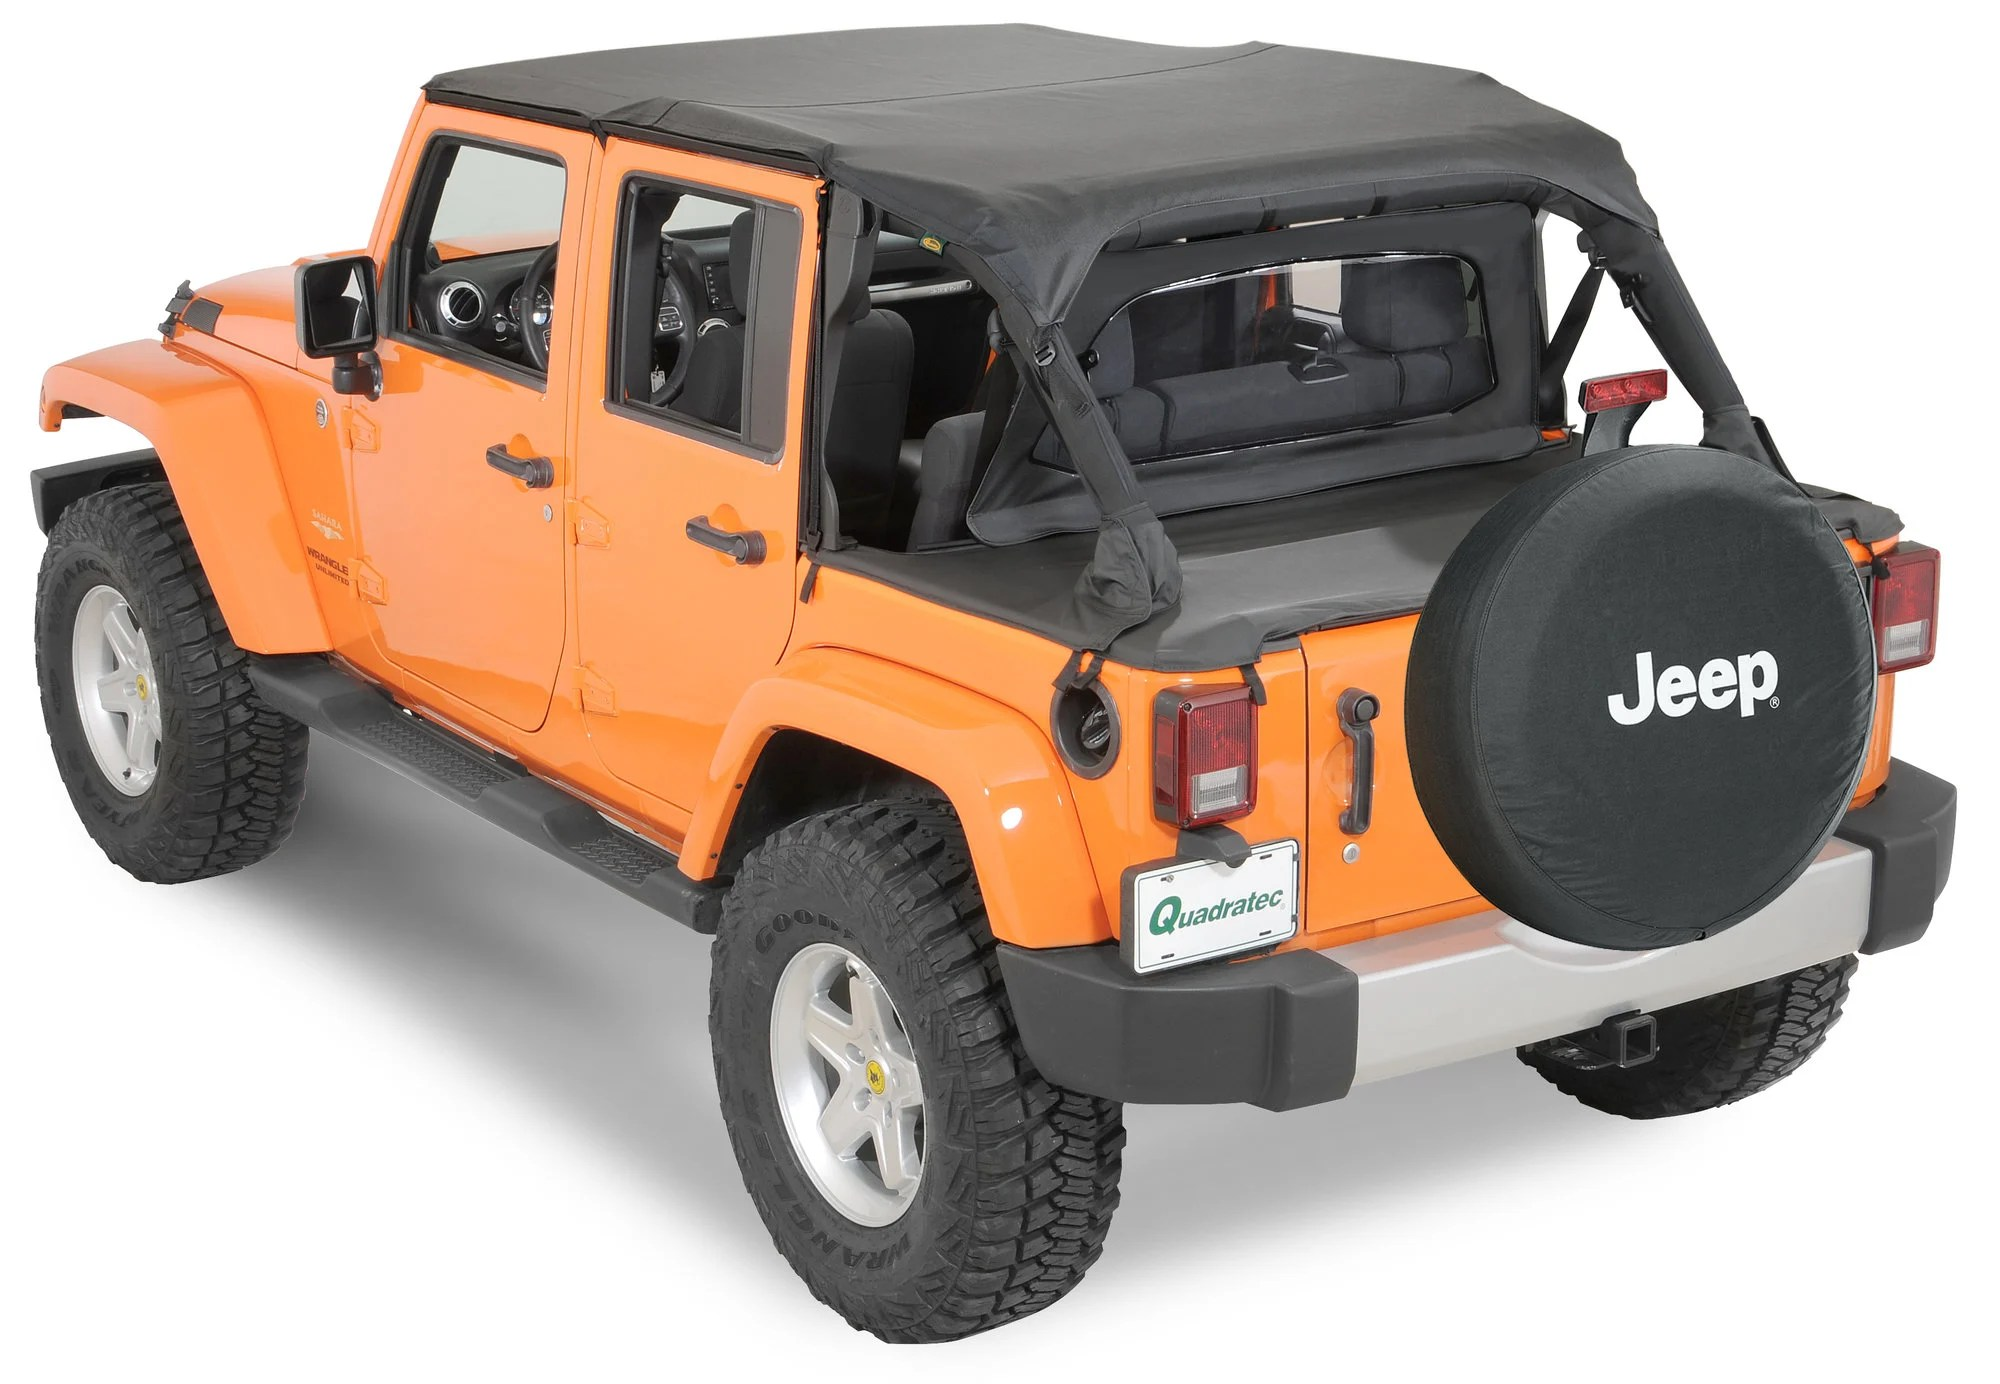 hight resolution of quadratop bimini top plus clearview windstopper tonno cover combo in black diamond for 07 18 jeep wrangler unlimited jk 4 door